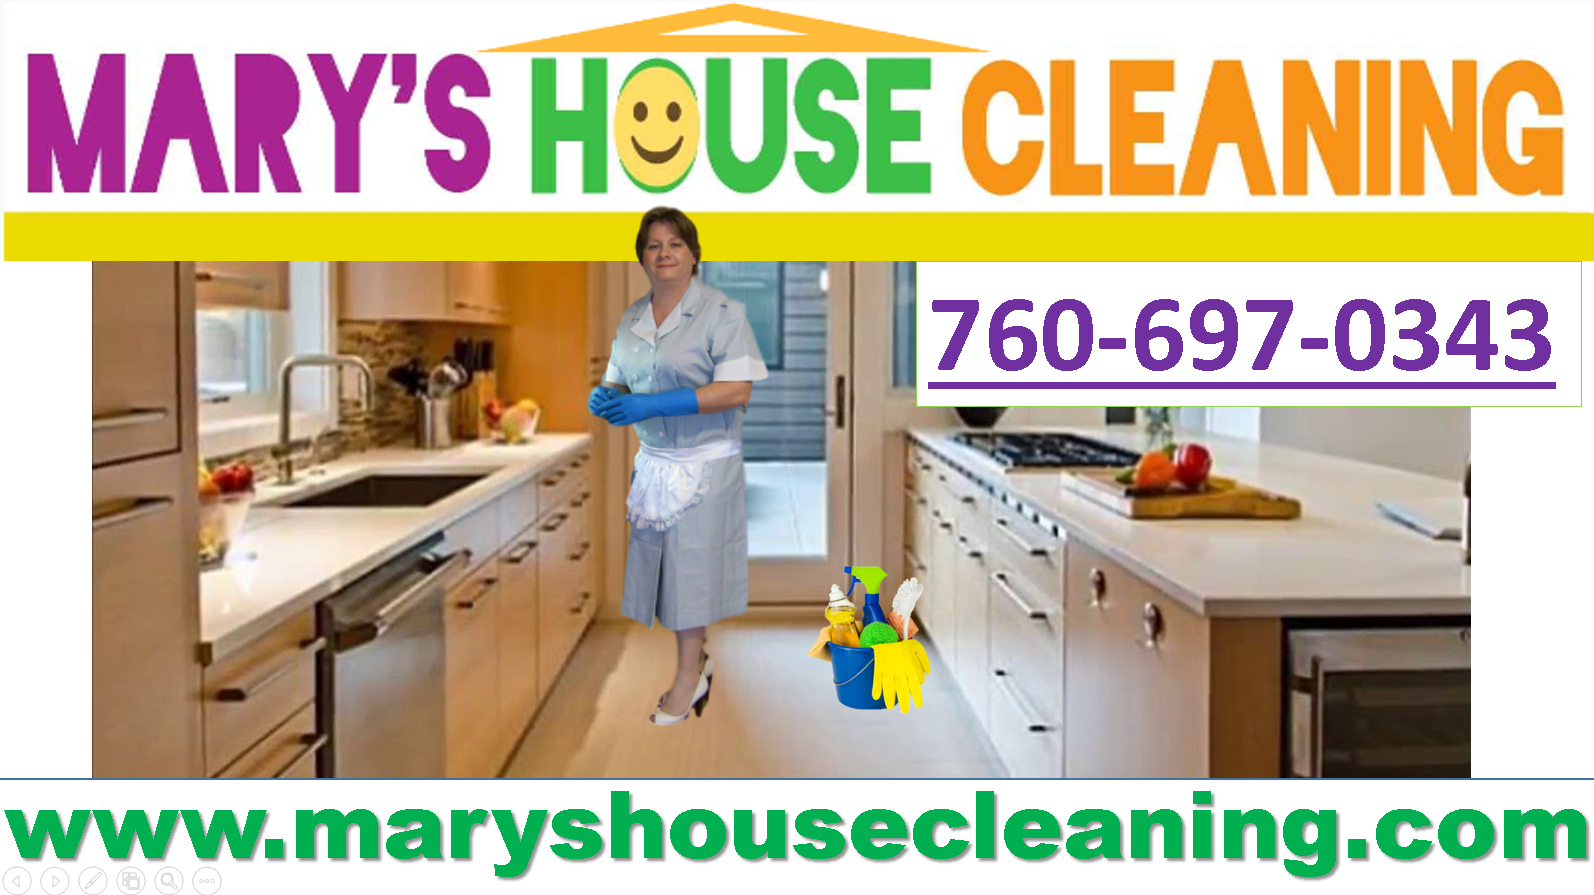 Marys House Cleaning Service in All North County